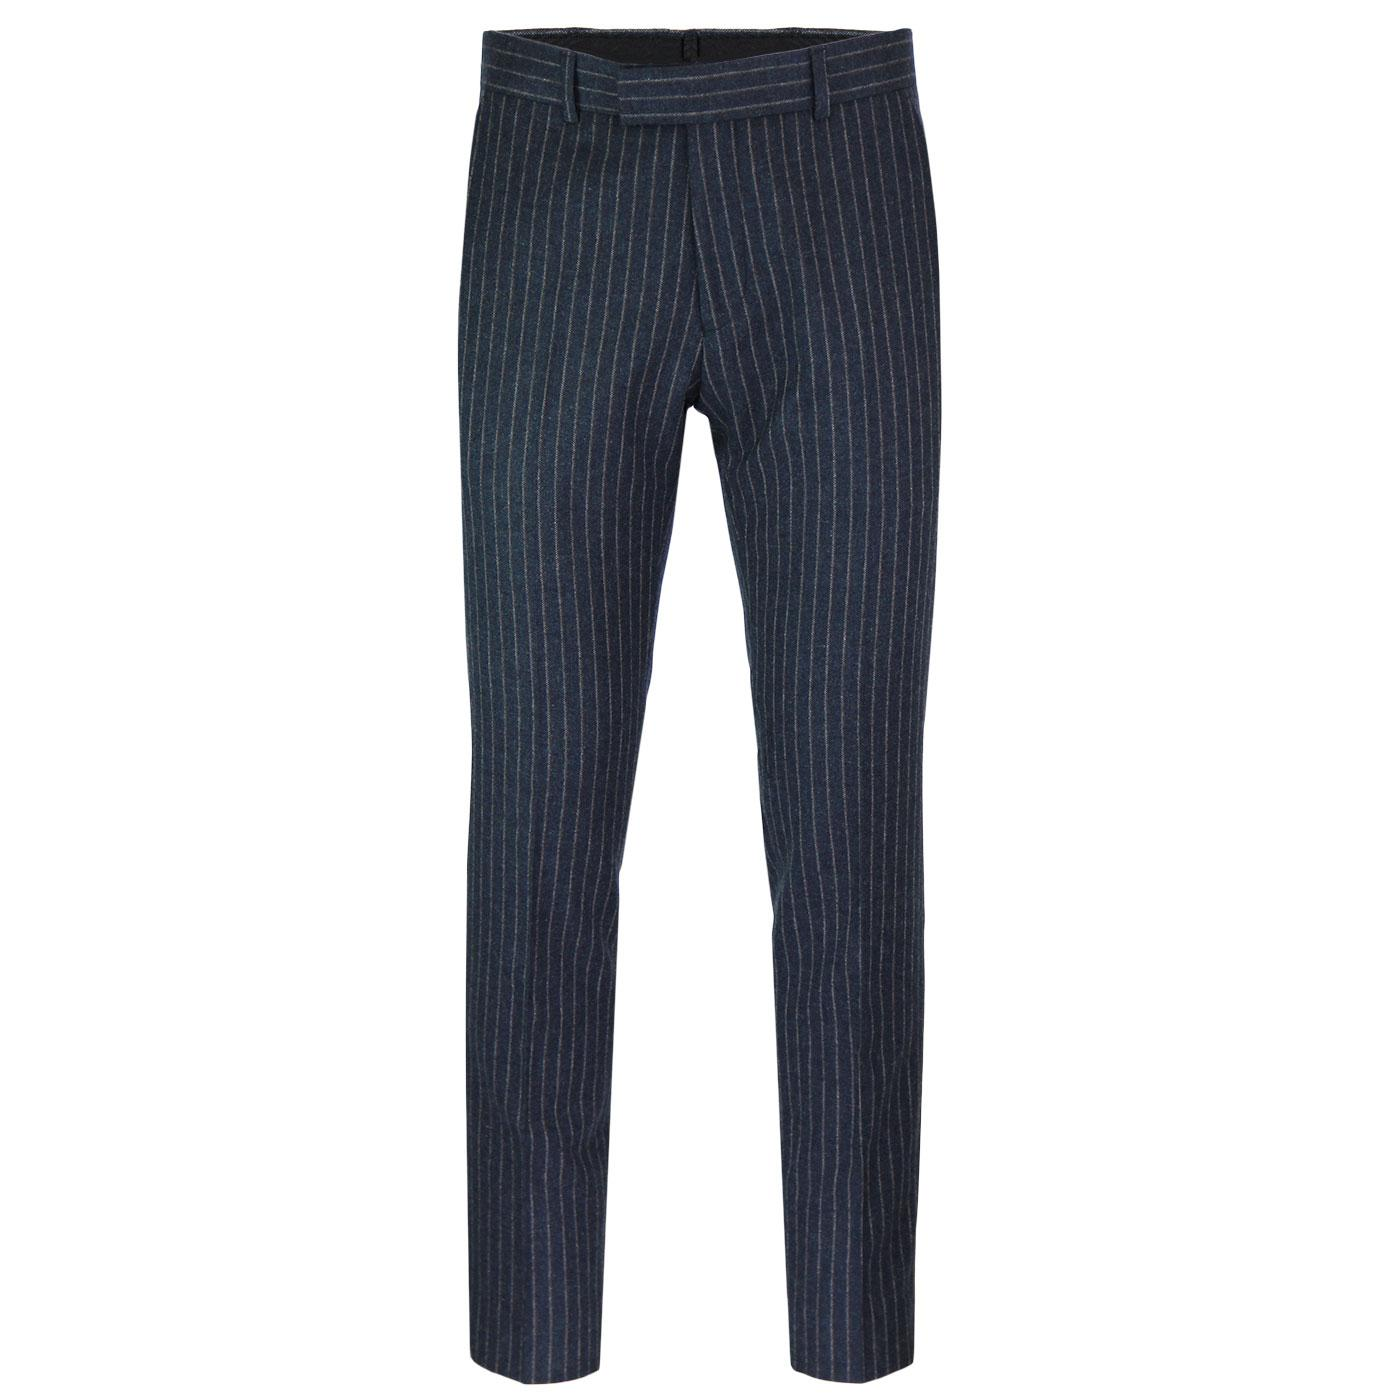 Radisson GIBSON LONDON Mod Pinstripe Suit Trousers